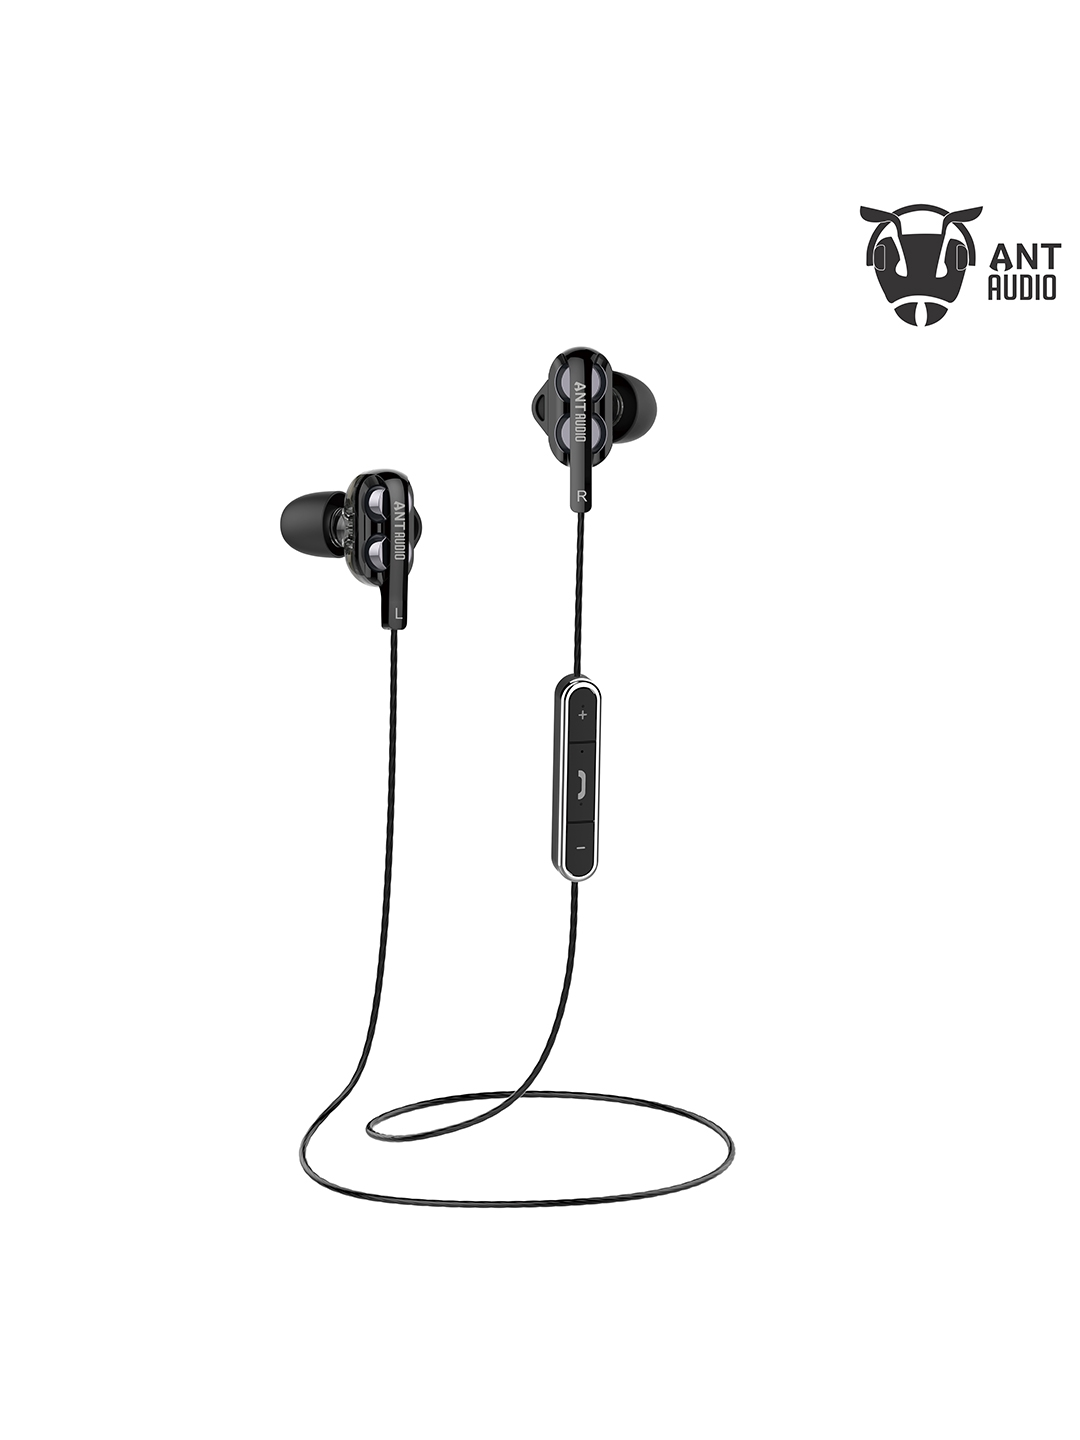 Ant Audio Unisex Black Double H2 Dual Driver Wireless in Ear Headset Ant Audio Headphones